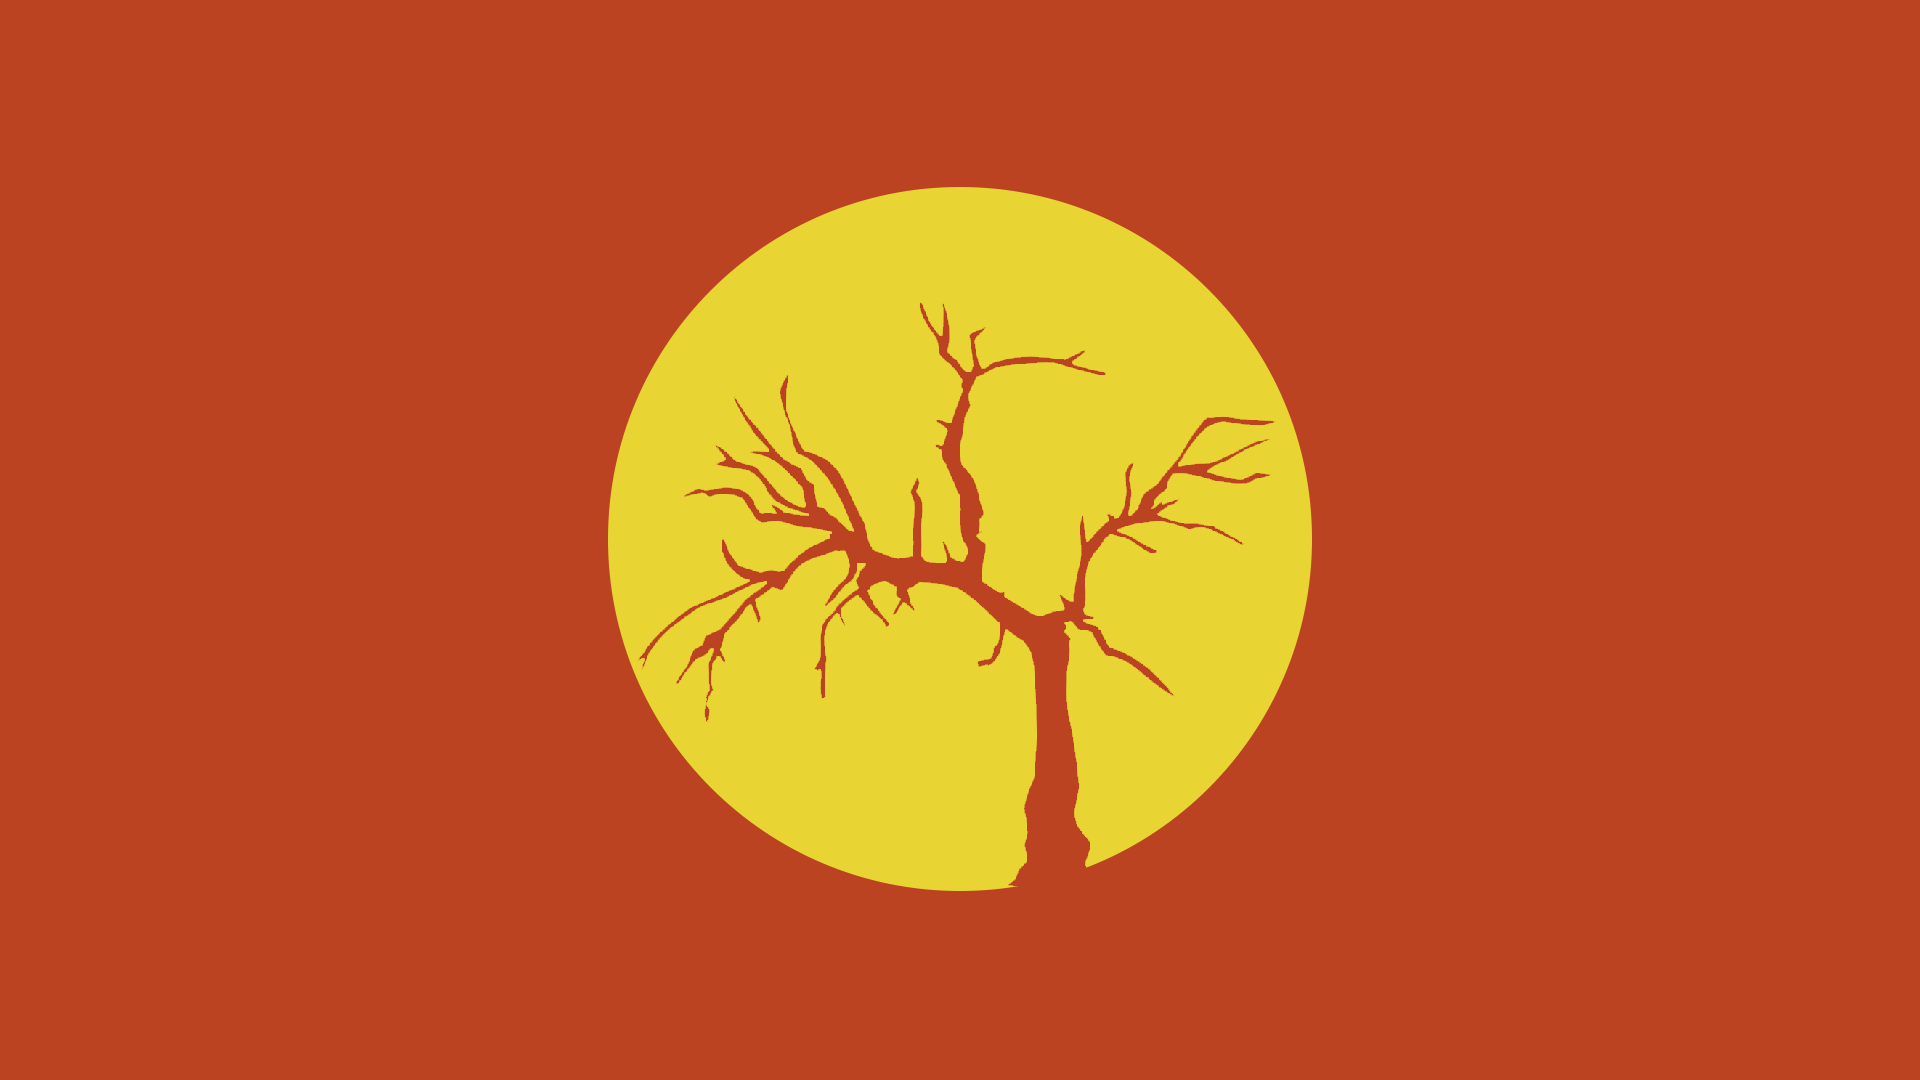 Minimal dead tree wallpaper 1920x1080 hd by connordaa on for Minimal art hd